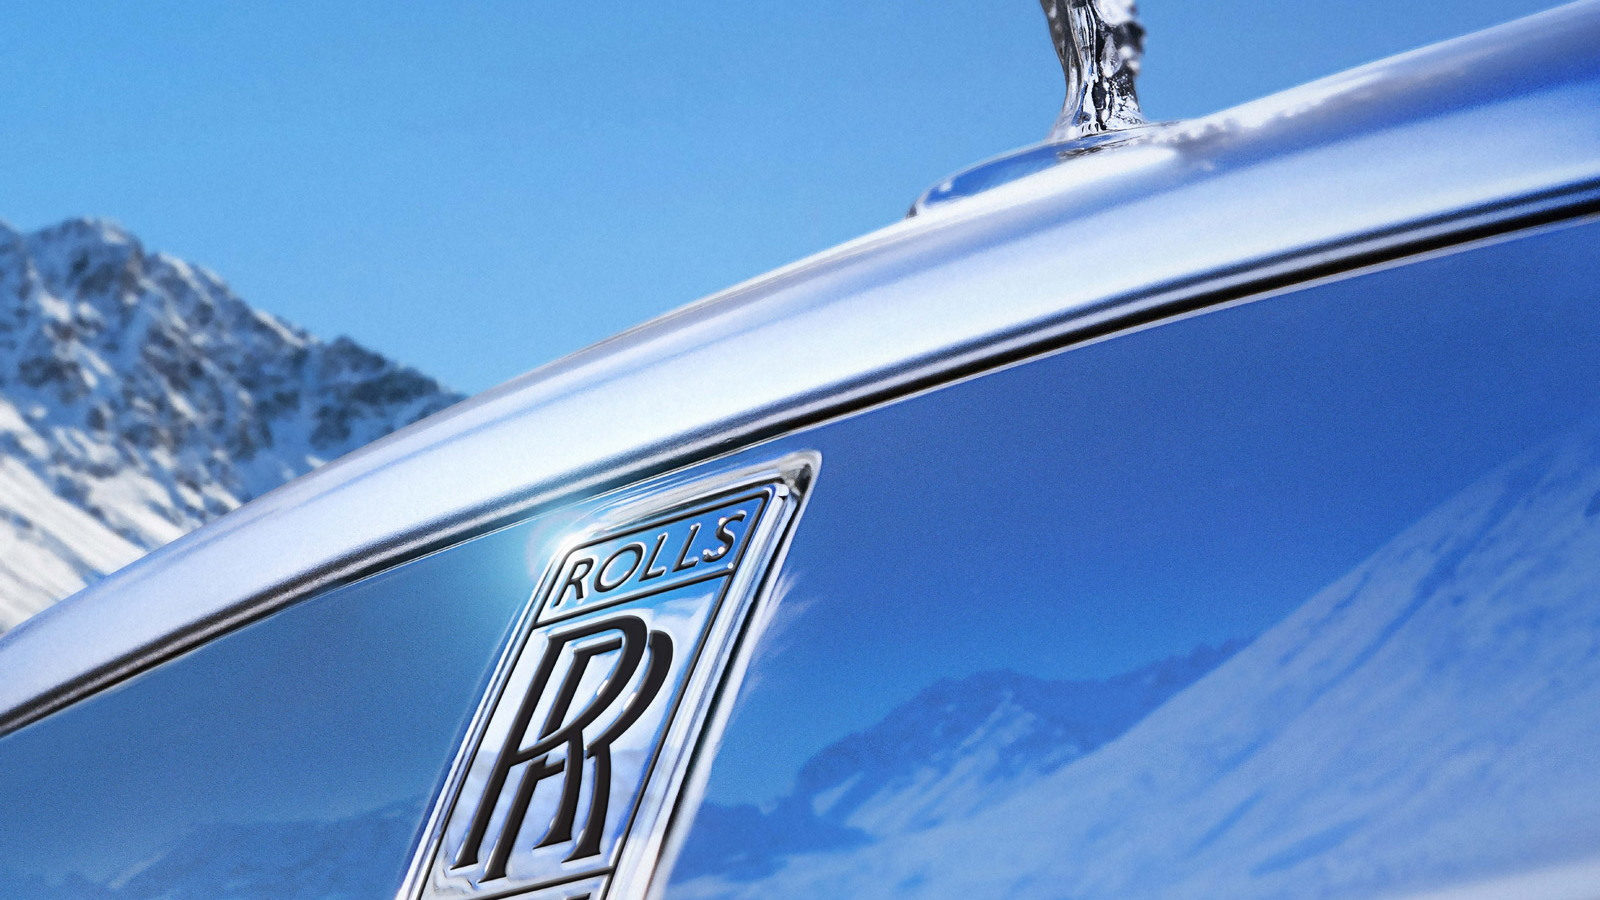 Rolls-Royce promises a vehicle that can that can cross any terrain